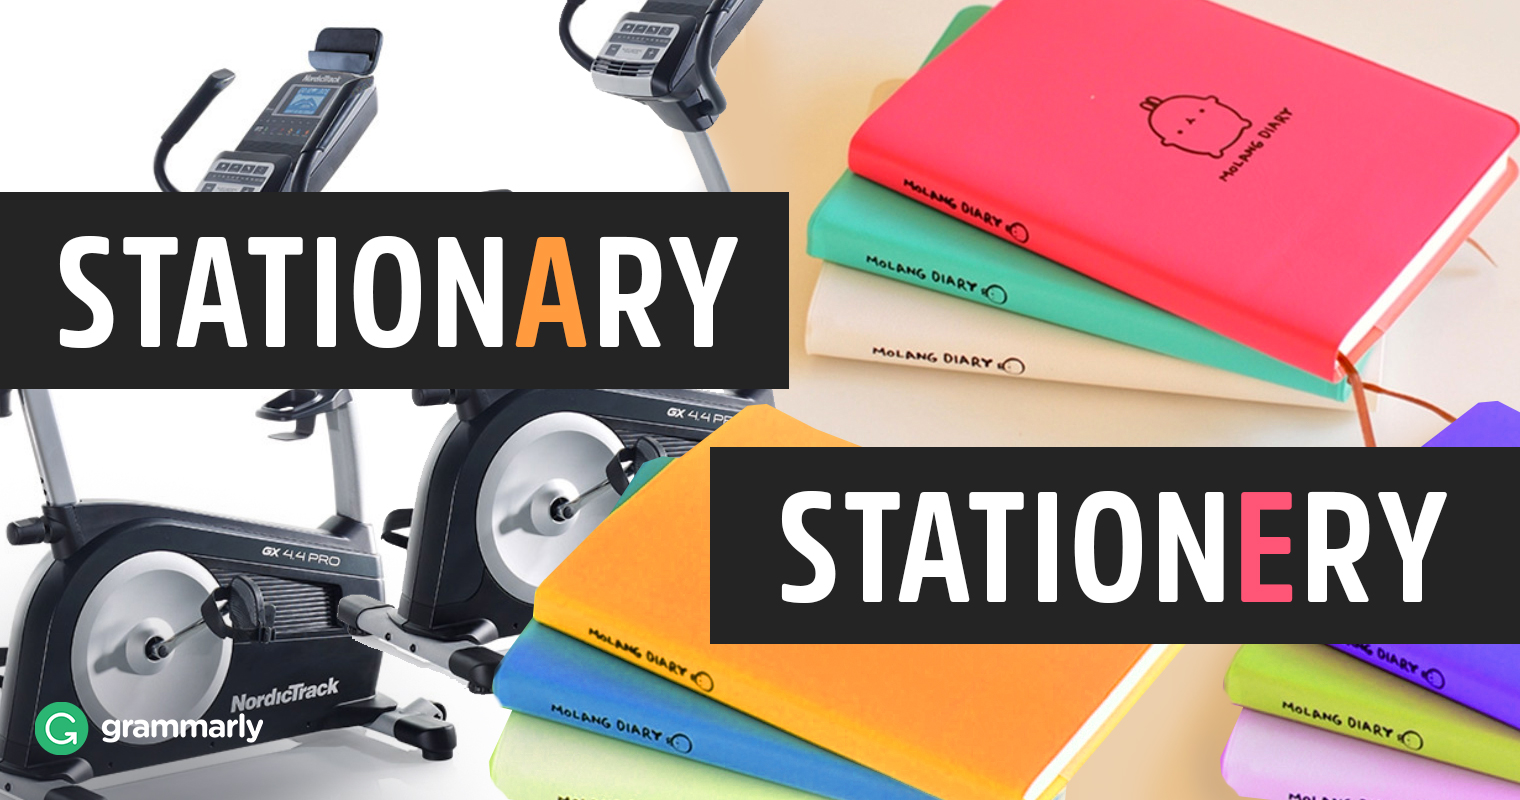 Stationary vs. Stationery—What's the Difference image